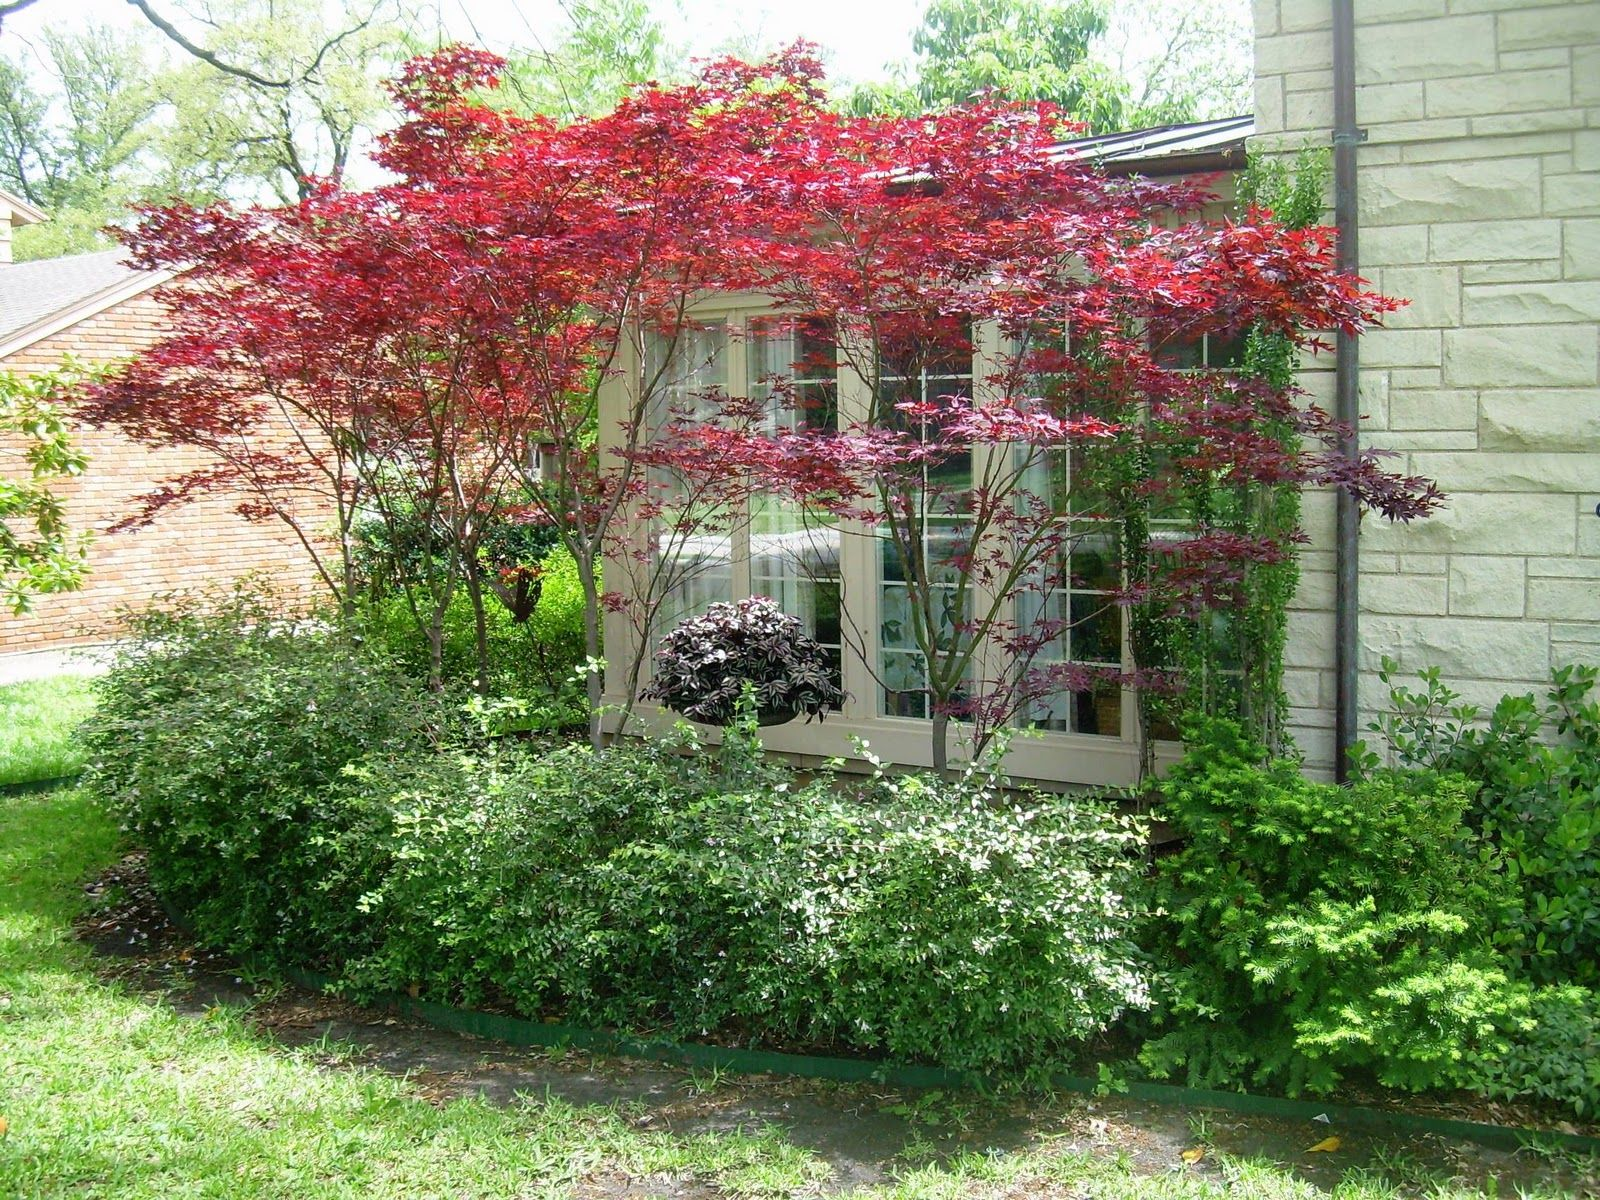 Dwarf ornamental trees and interesting small ornamental trees available in our area